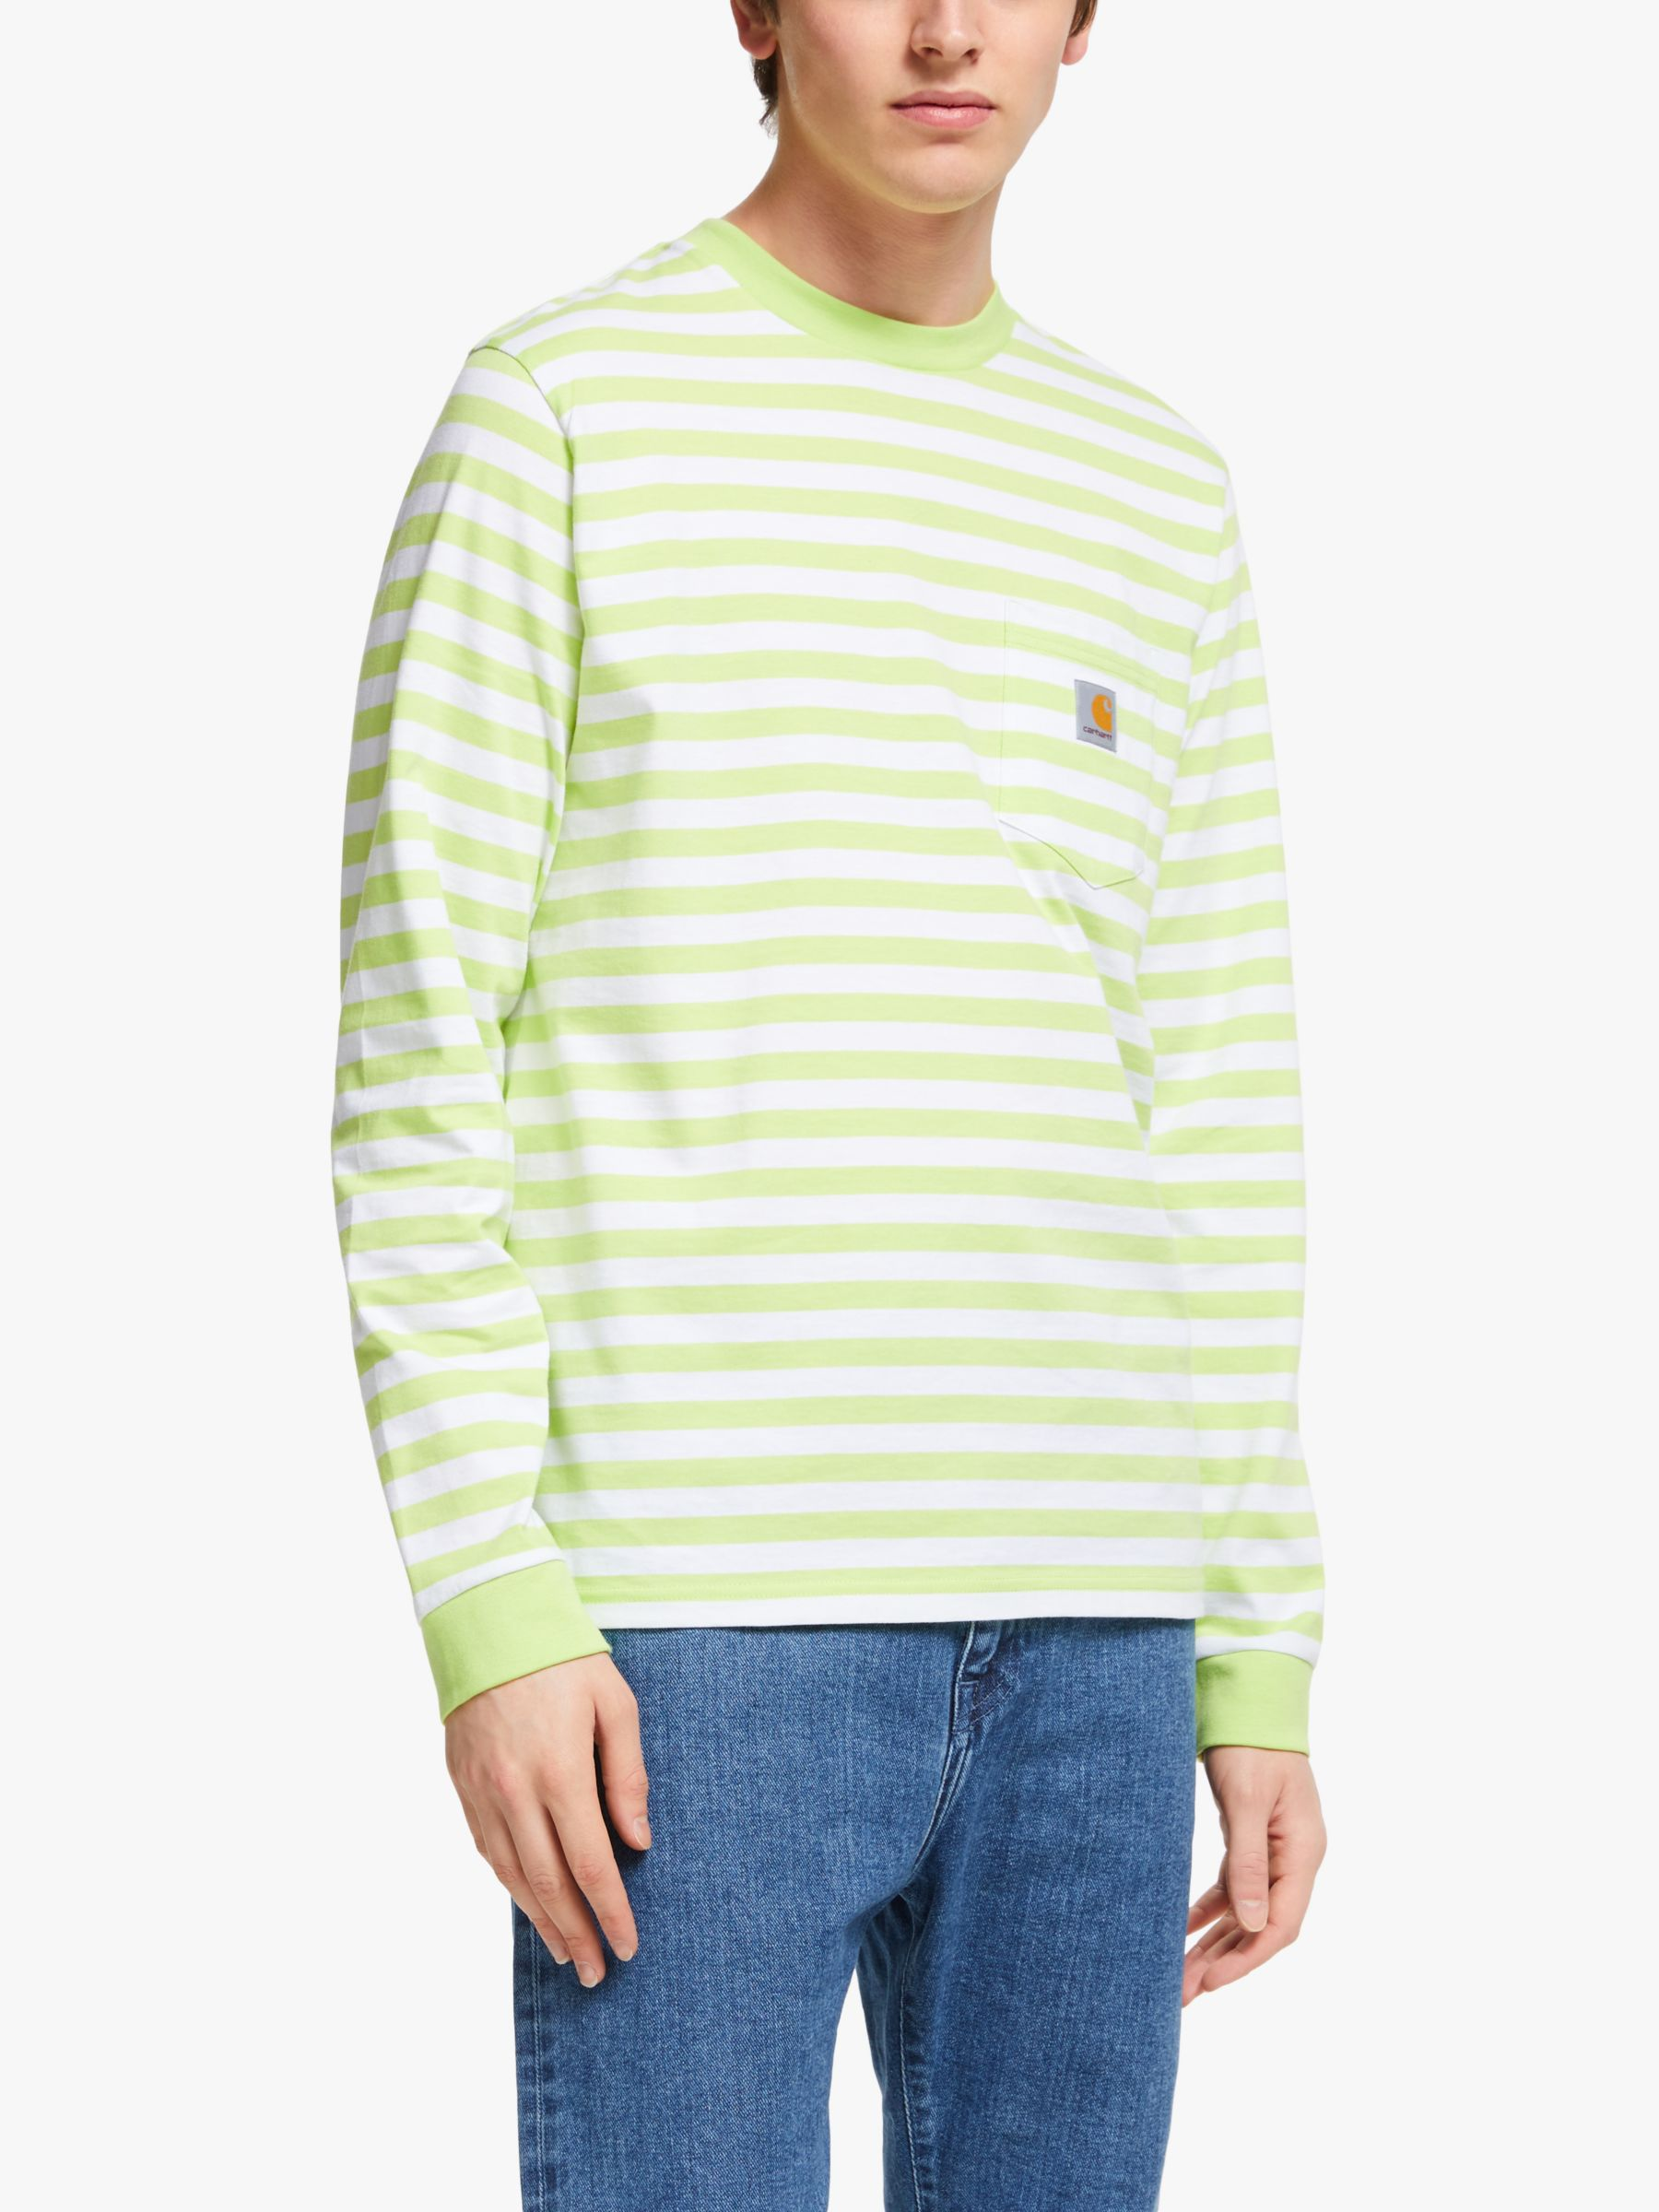 Carhartt WIP Carhartt WIP Scotty Pocket Stripe Long Sleeve Tee